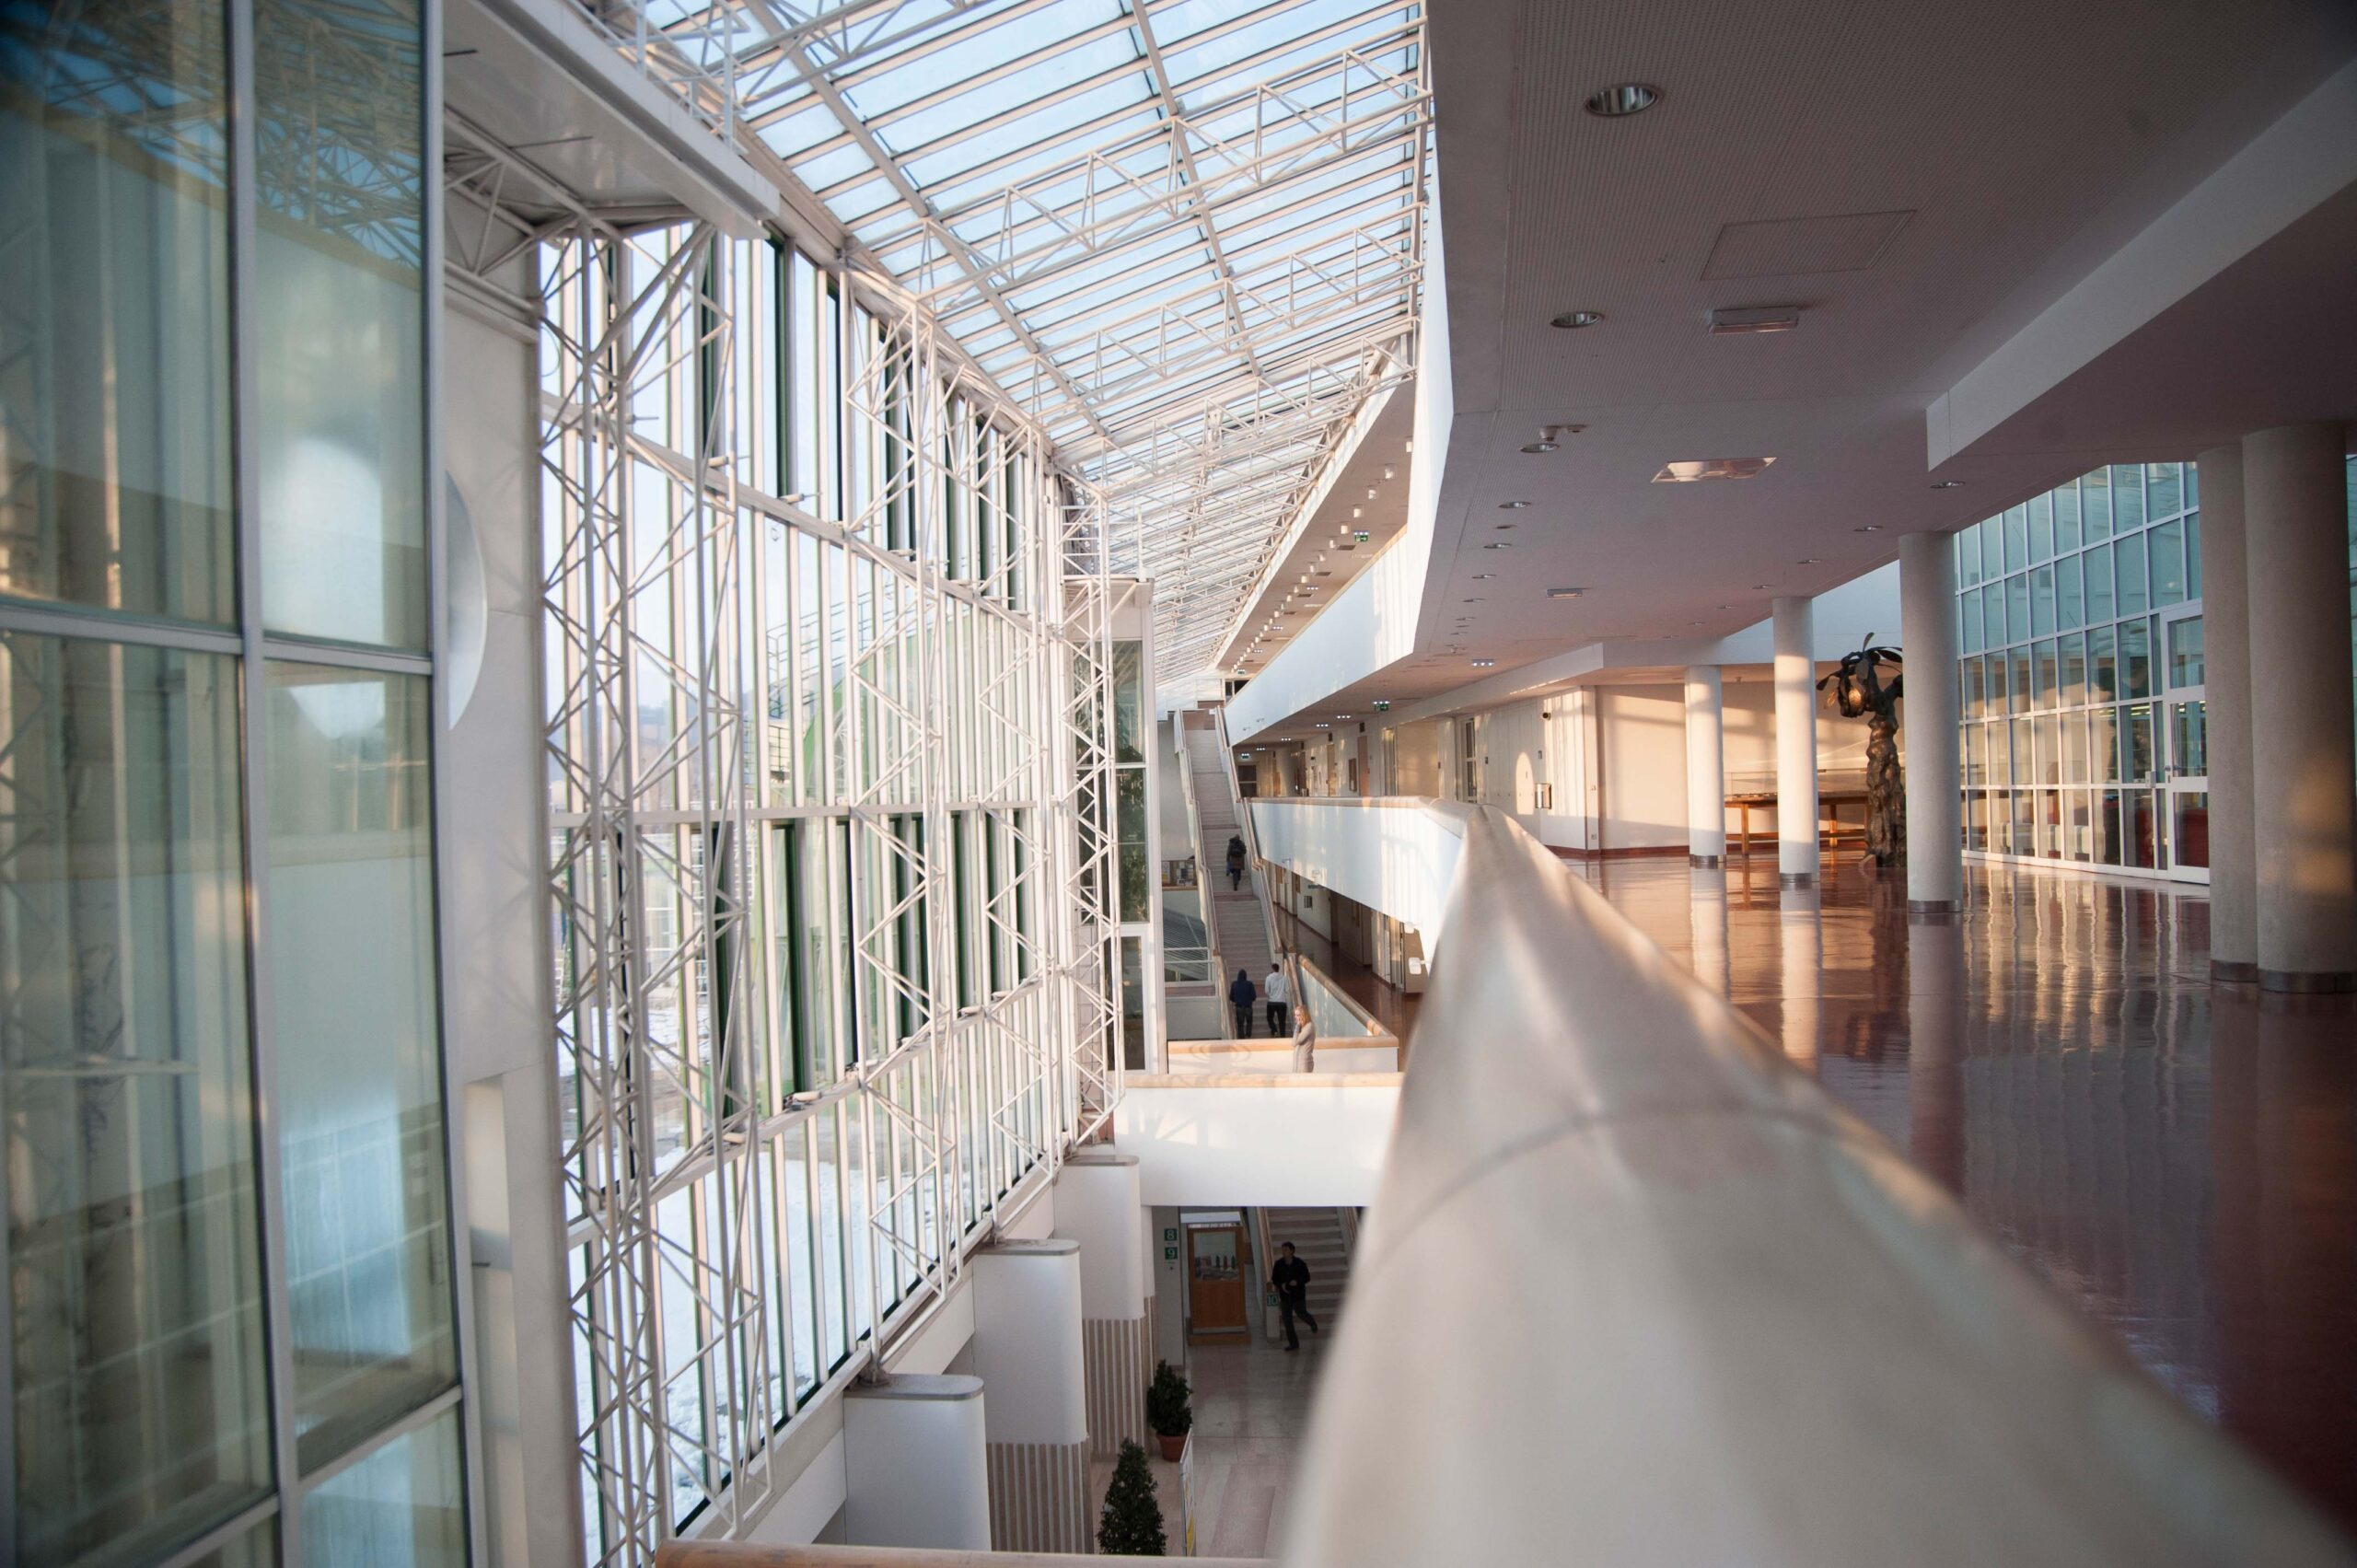 Staircase in the Faculty of Natural Sciences at sunset